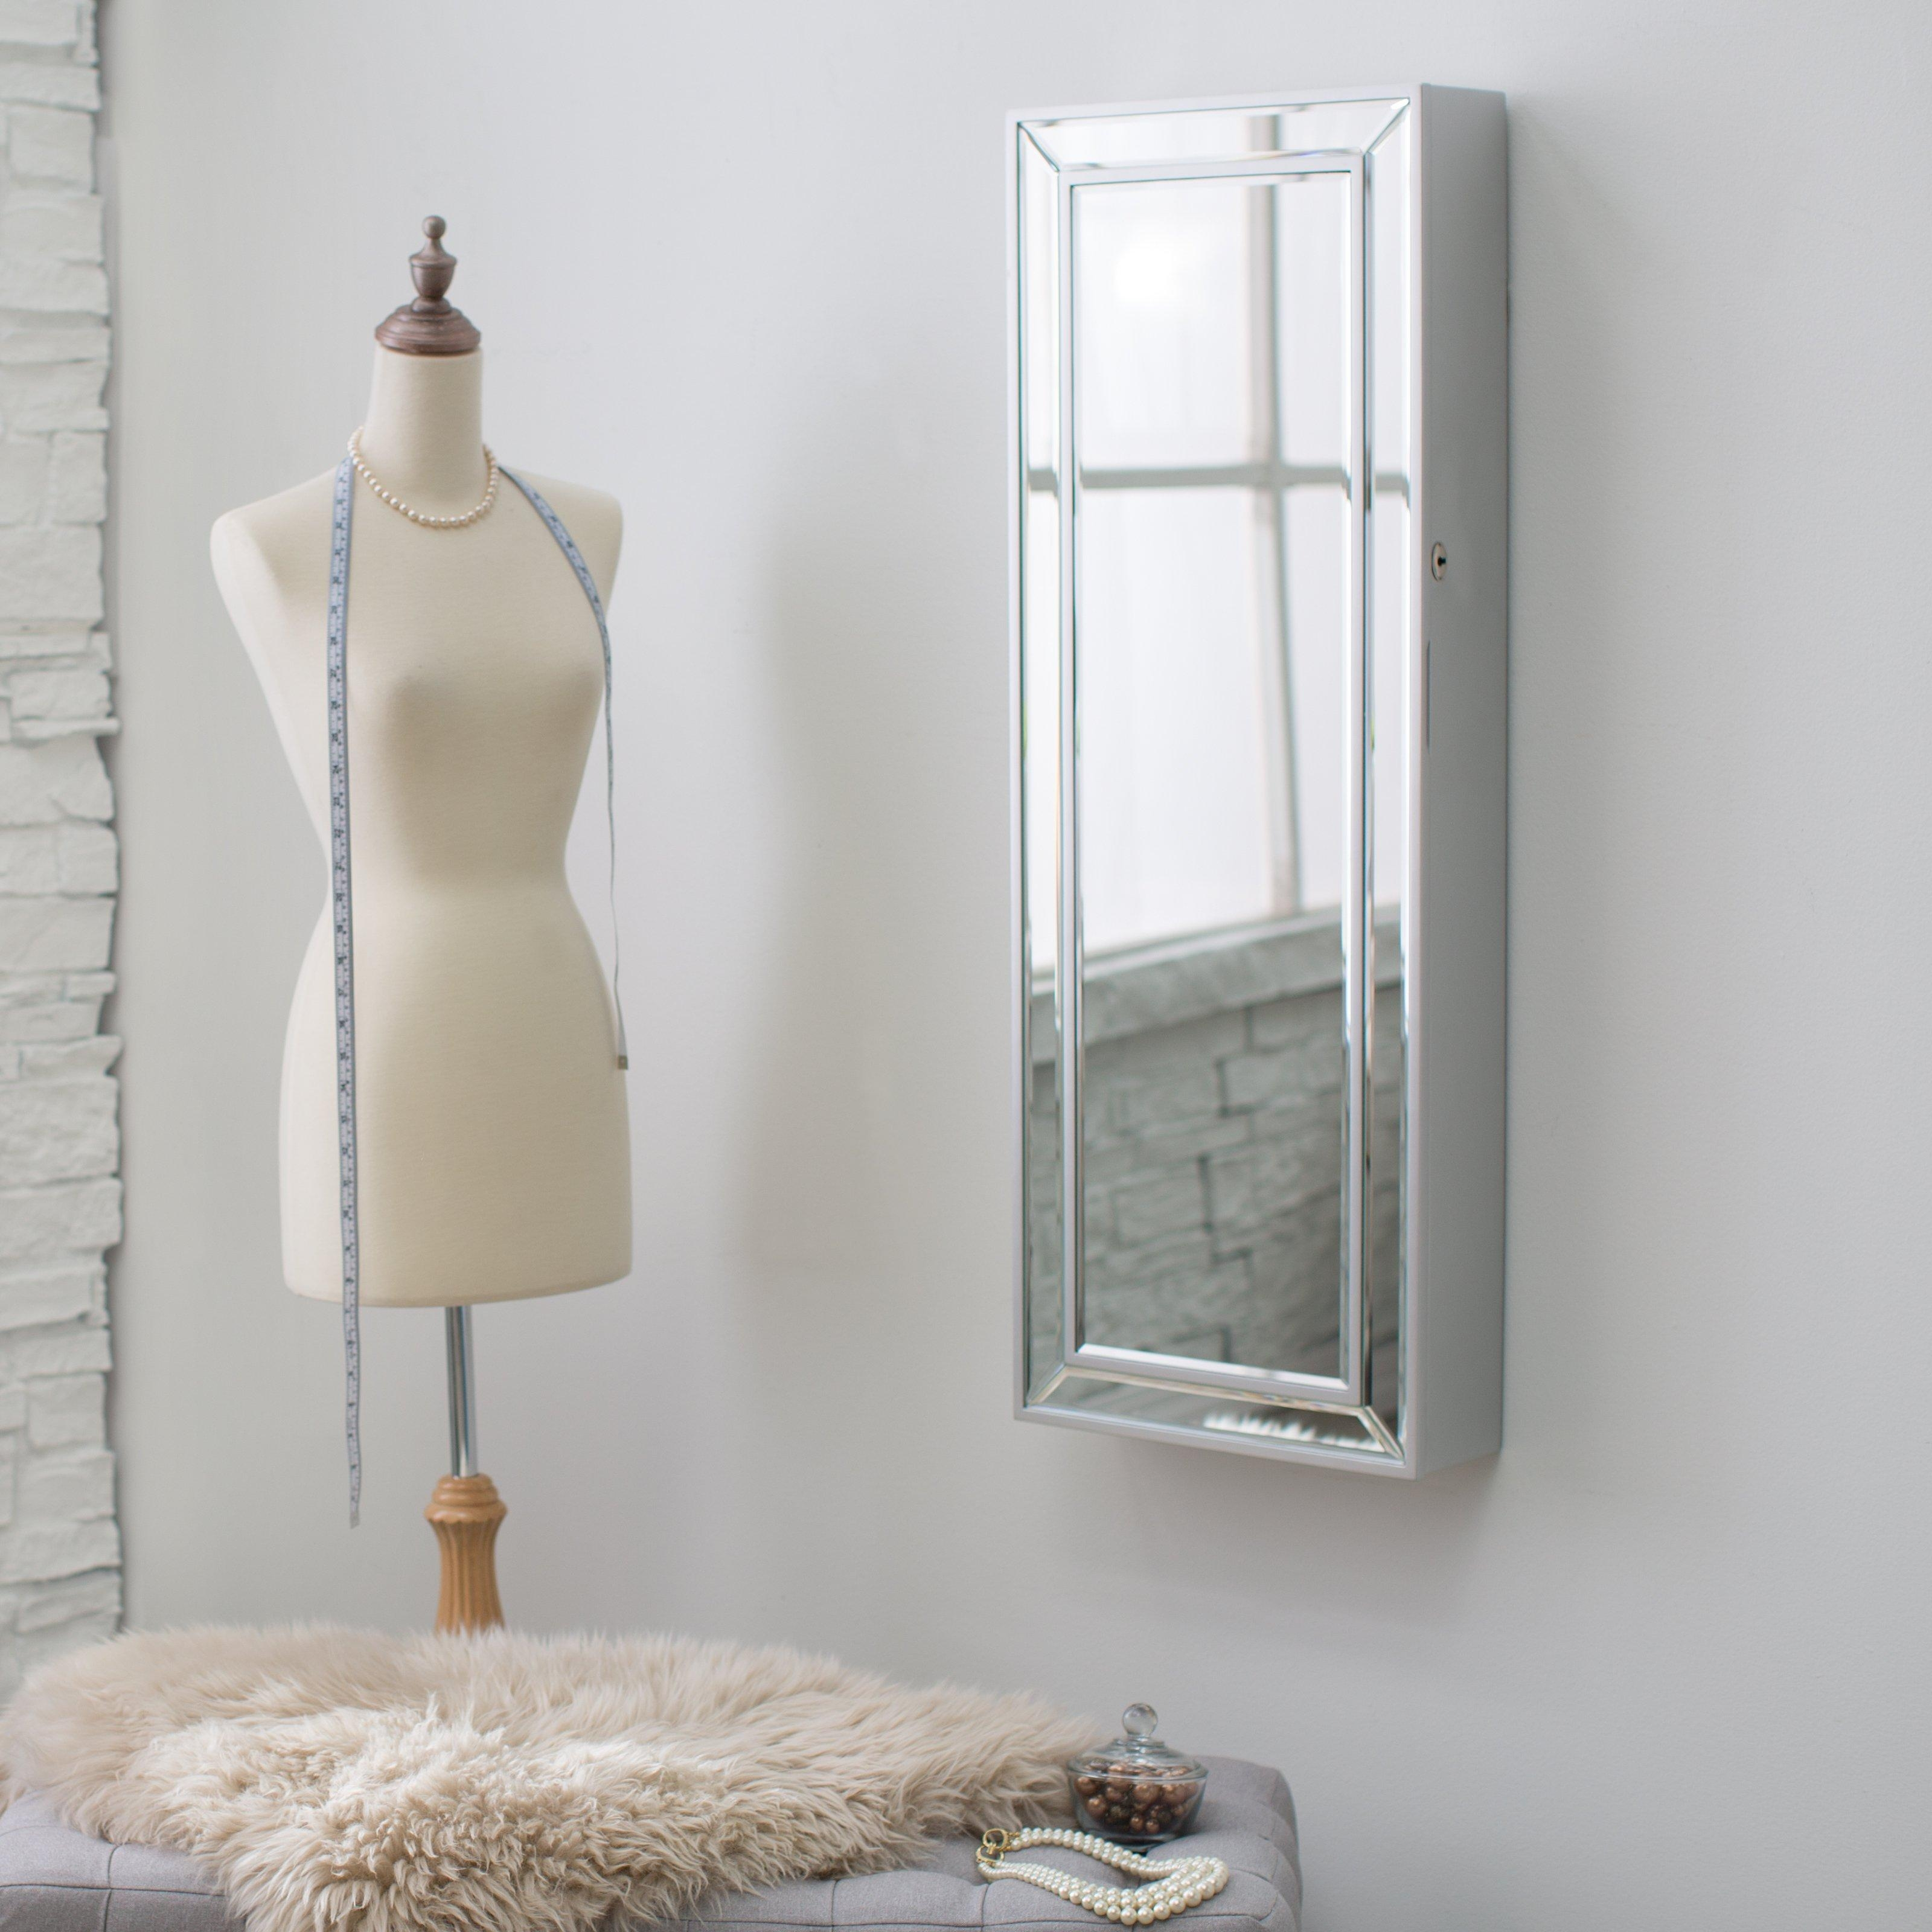 Marvelous Decoration Wall Mounted Full Length Mirror Fashionable Within Wall Mounted Mirrors For Bedroom (Photo 14 of 20)